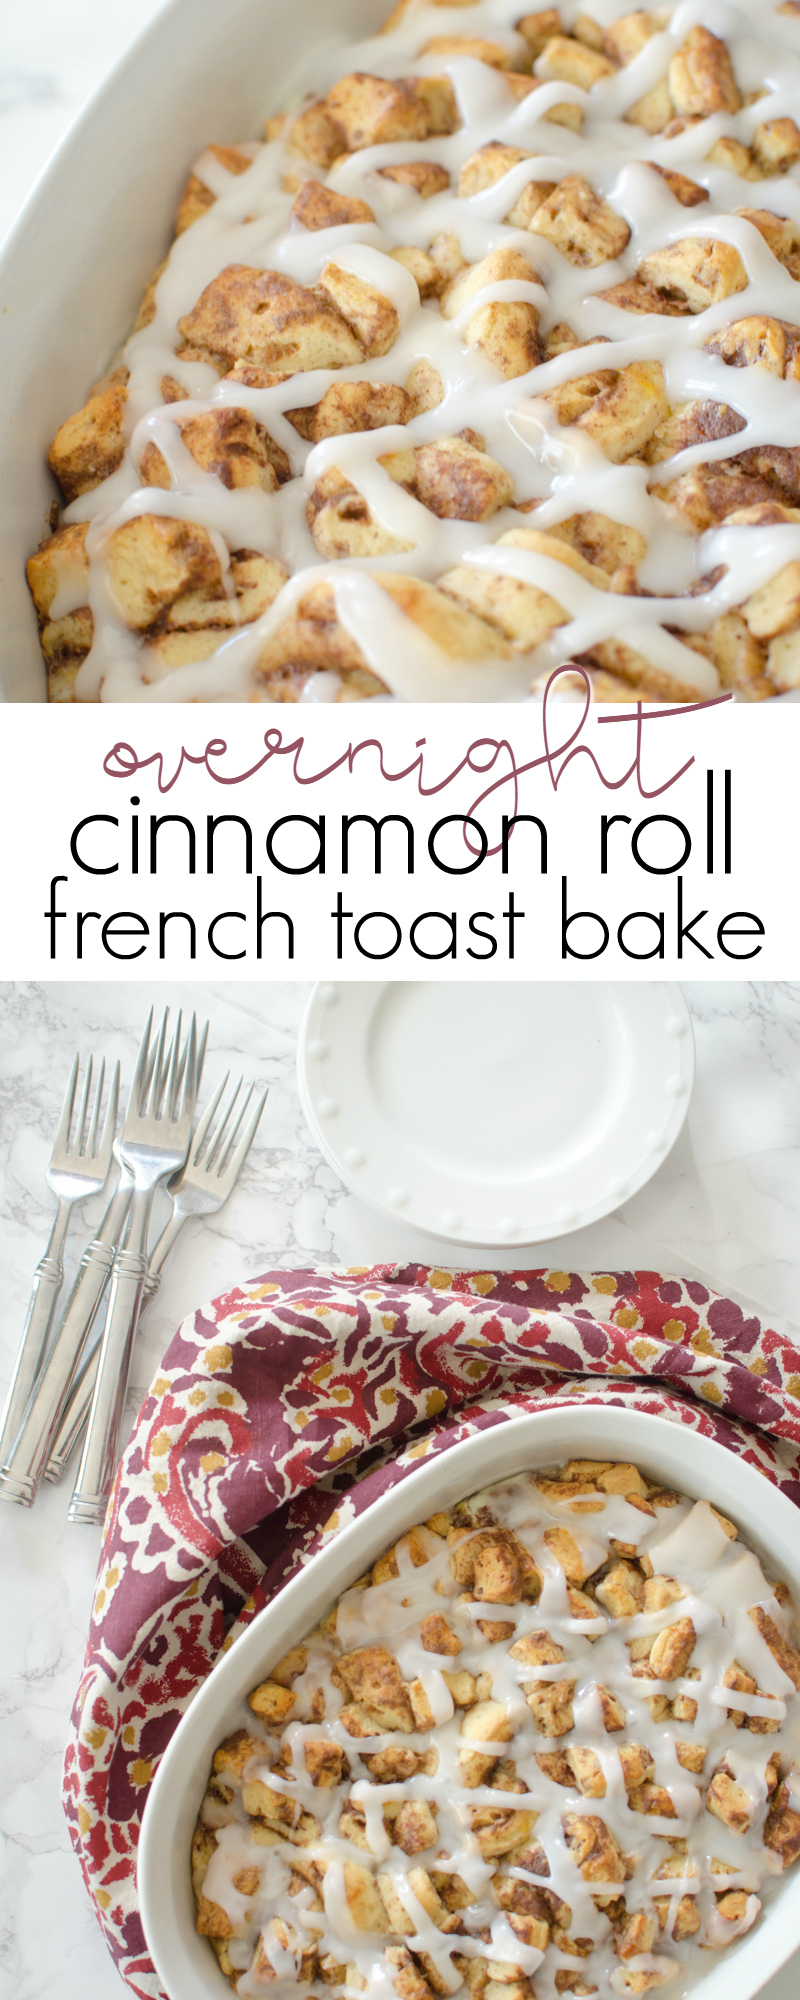 overnight-cinnamon-roll-french-toast-bake